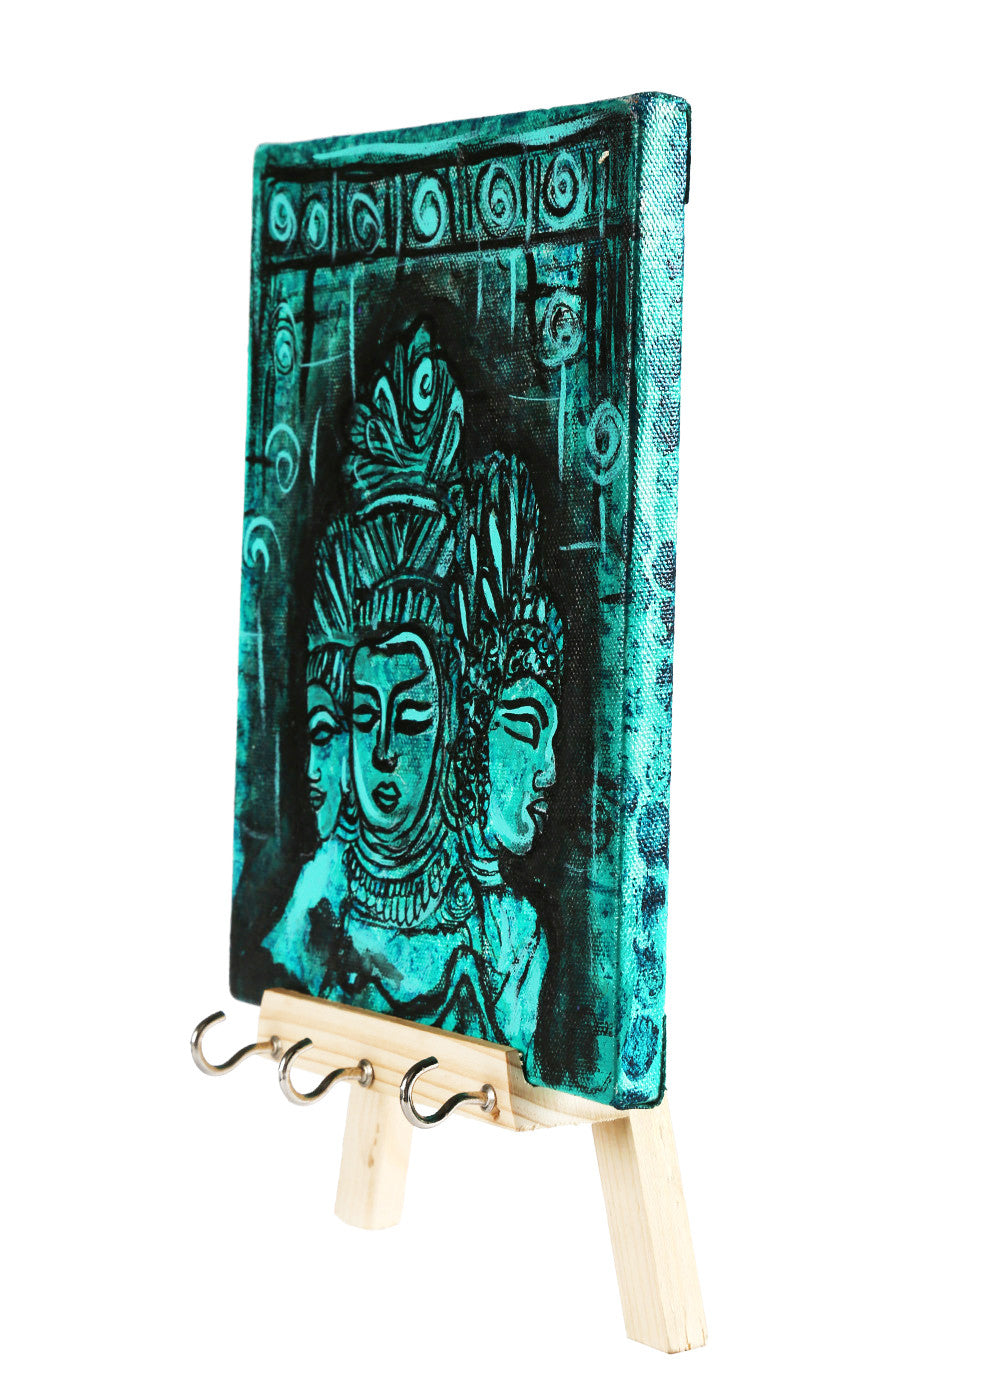 THE BLUE AJANTA DECORATIVE KEYCHAIN HOLDER - RANGRAGE